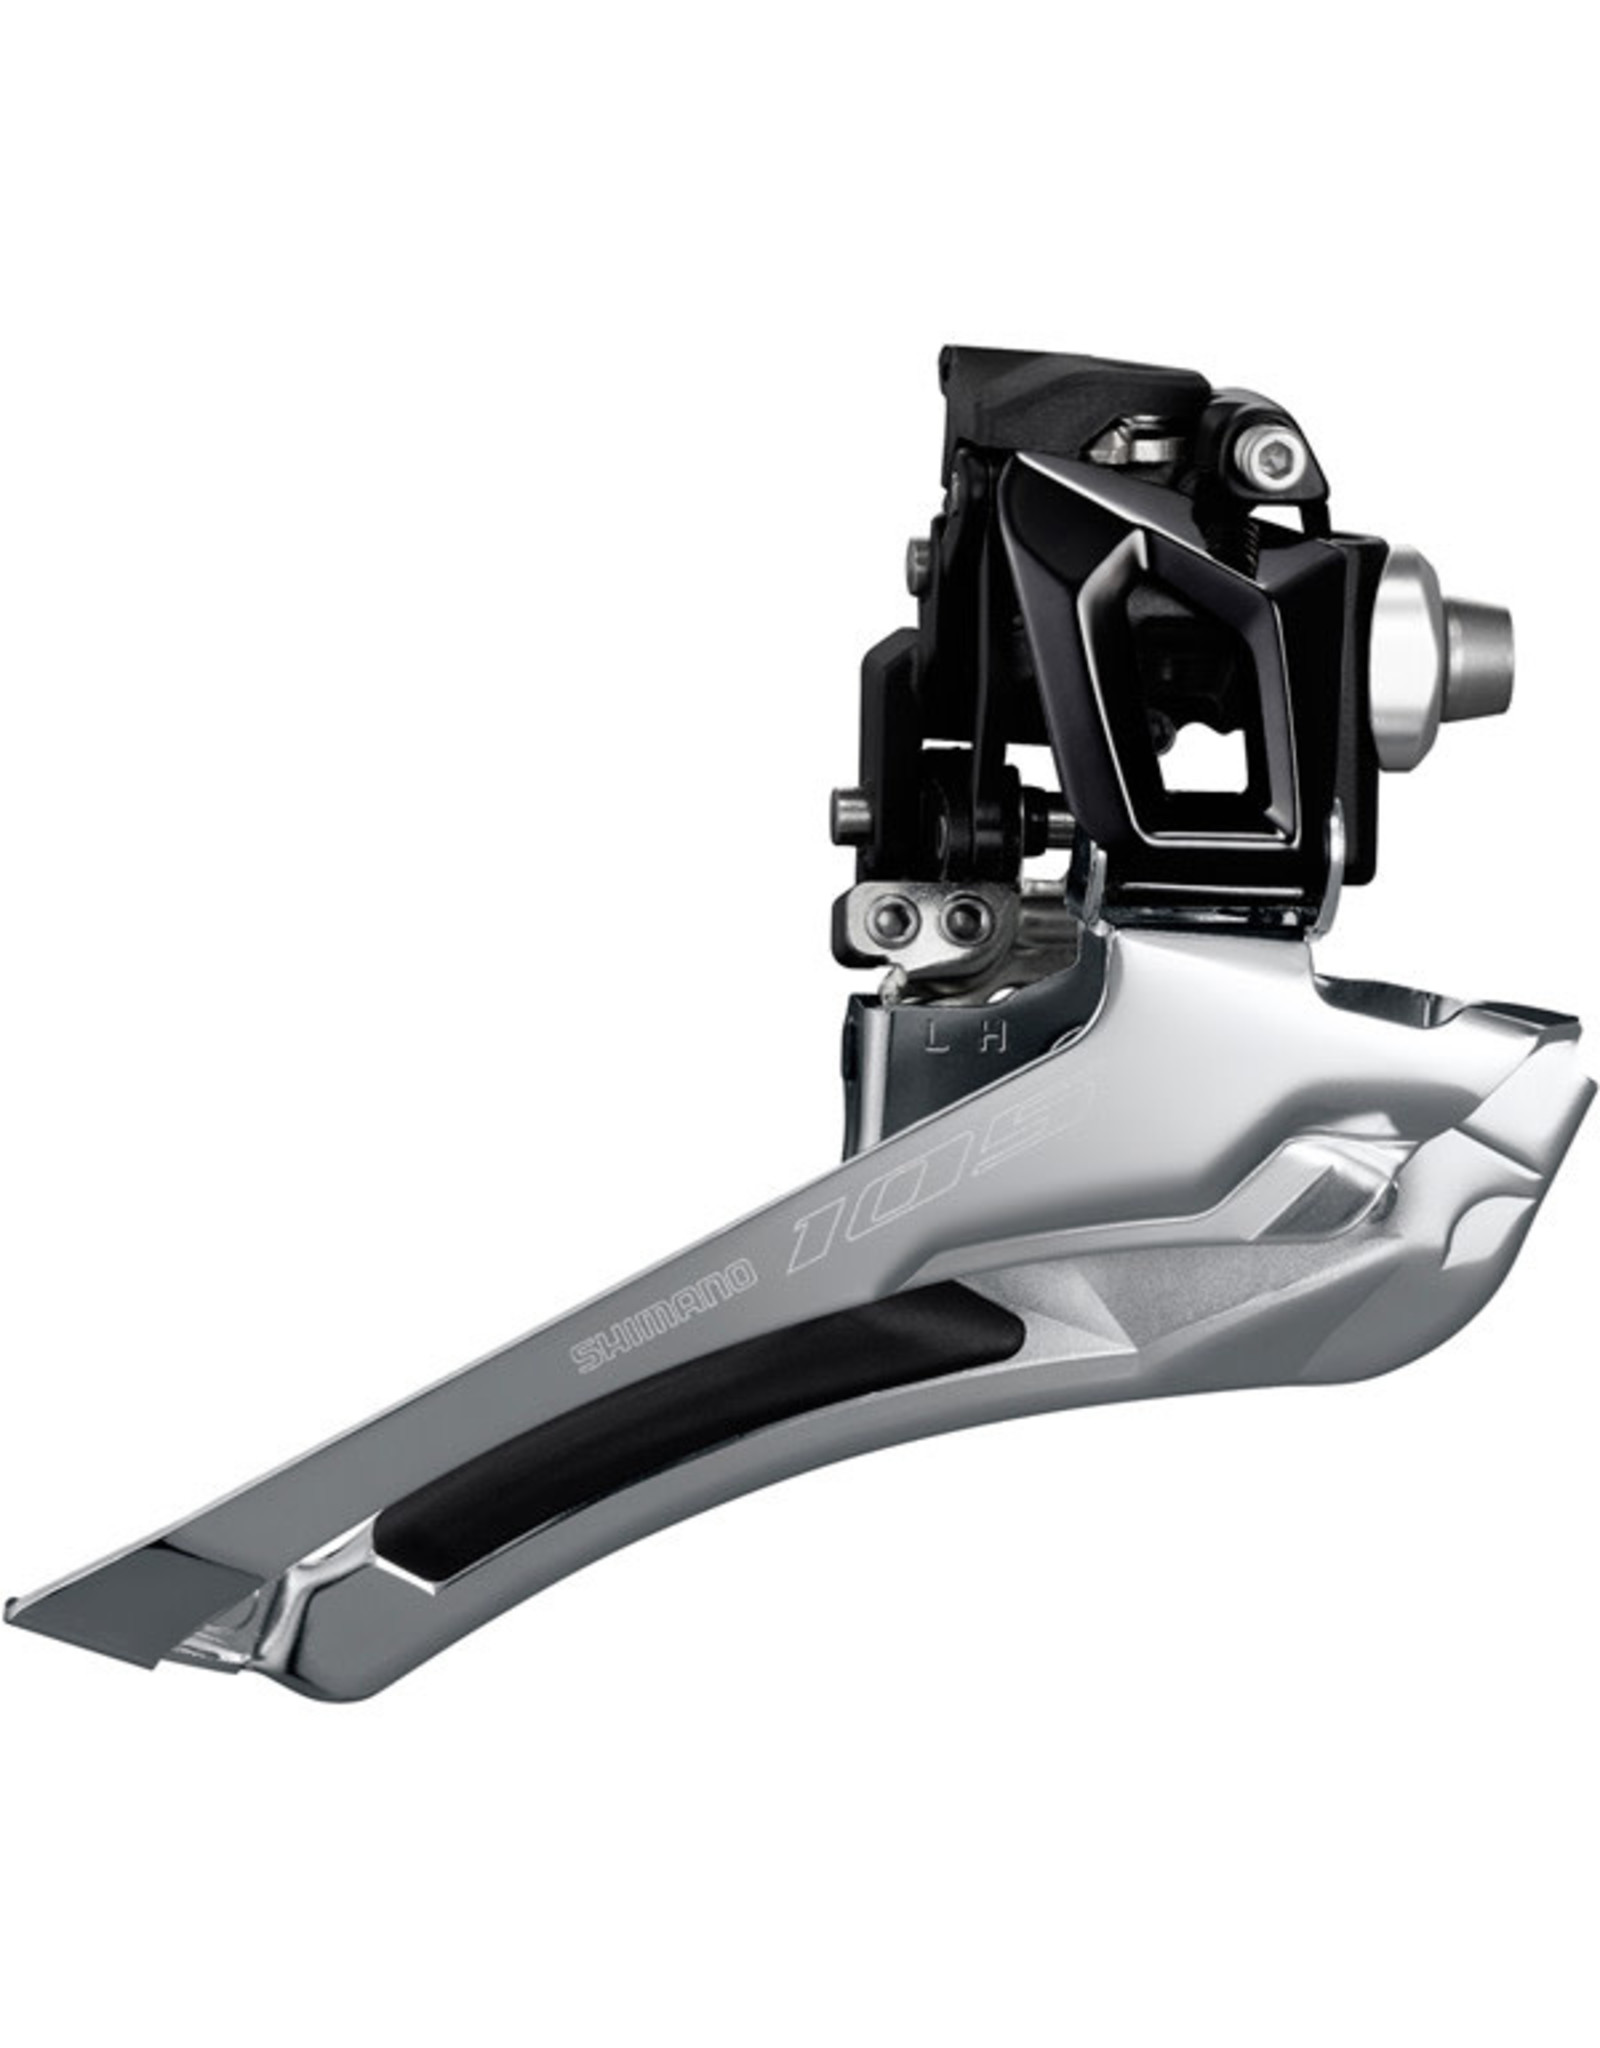 Shimano Front Derailleur Double 105 R7000 11 Speed Braze-On